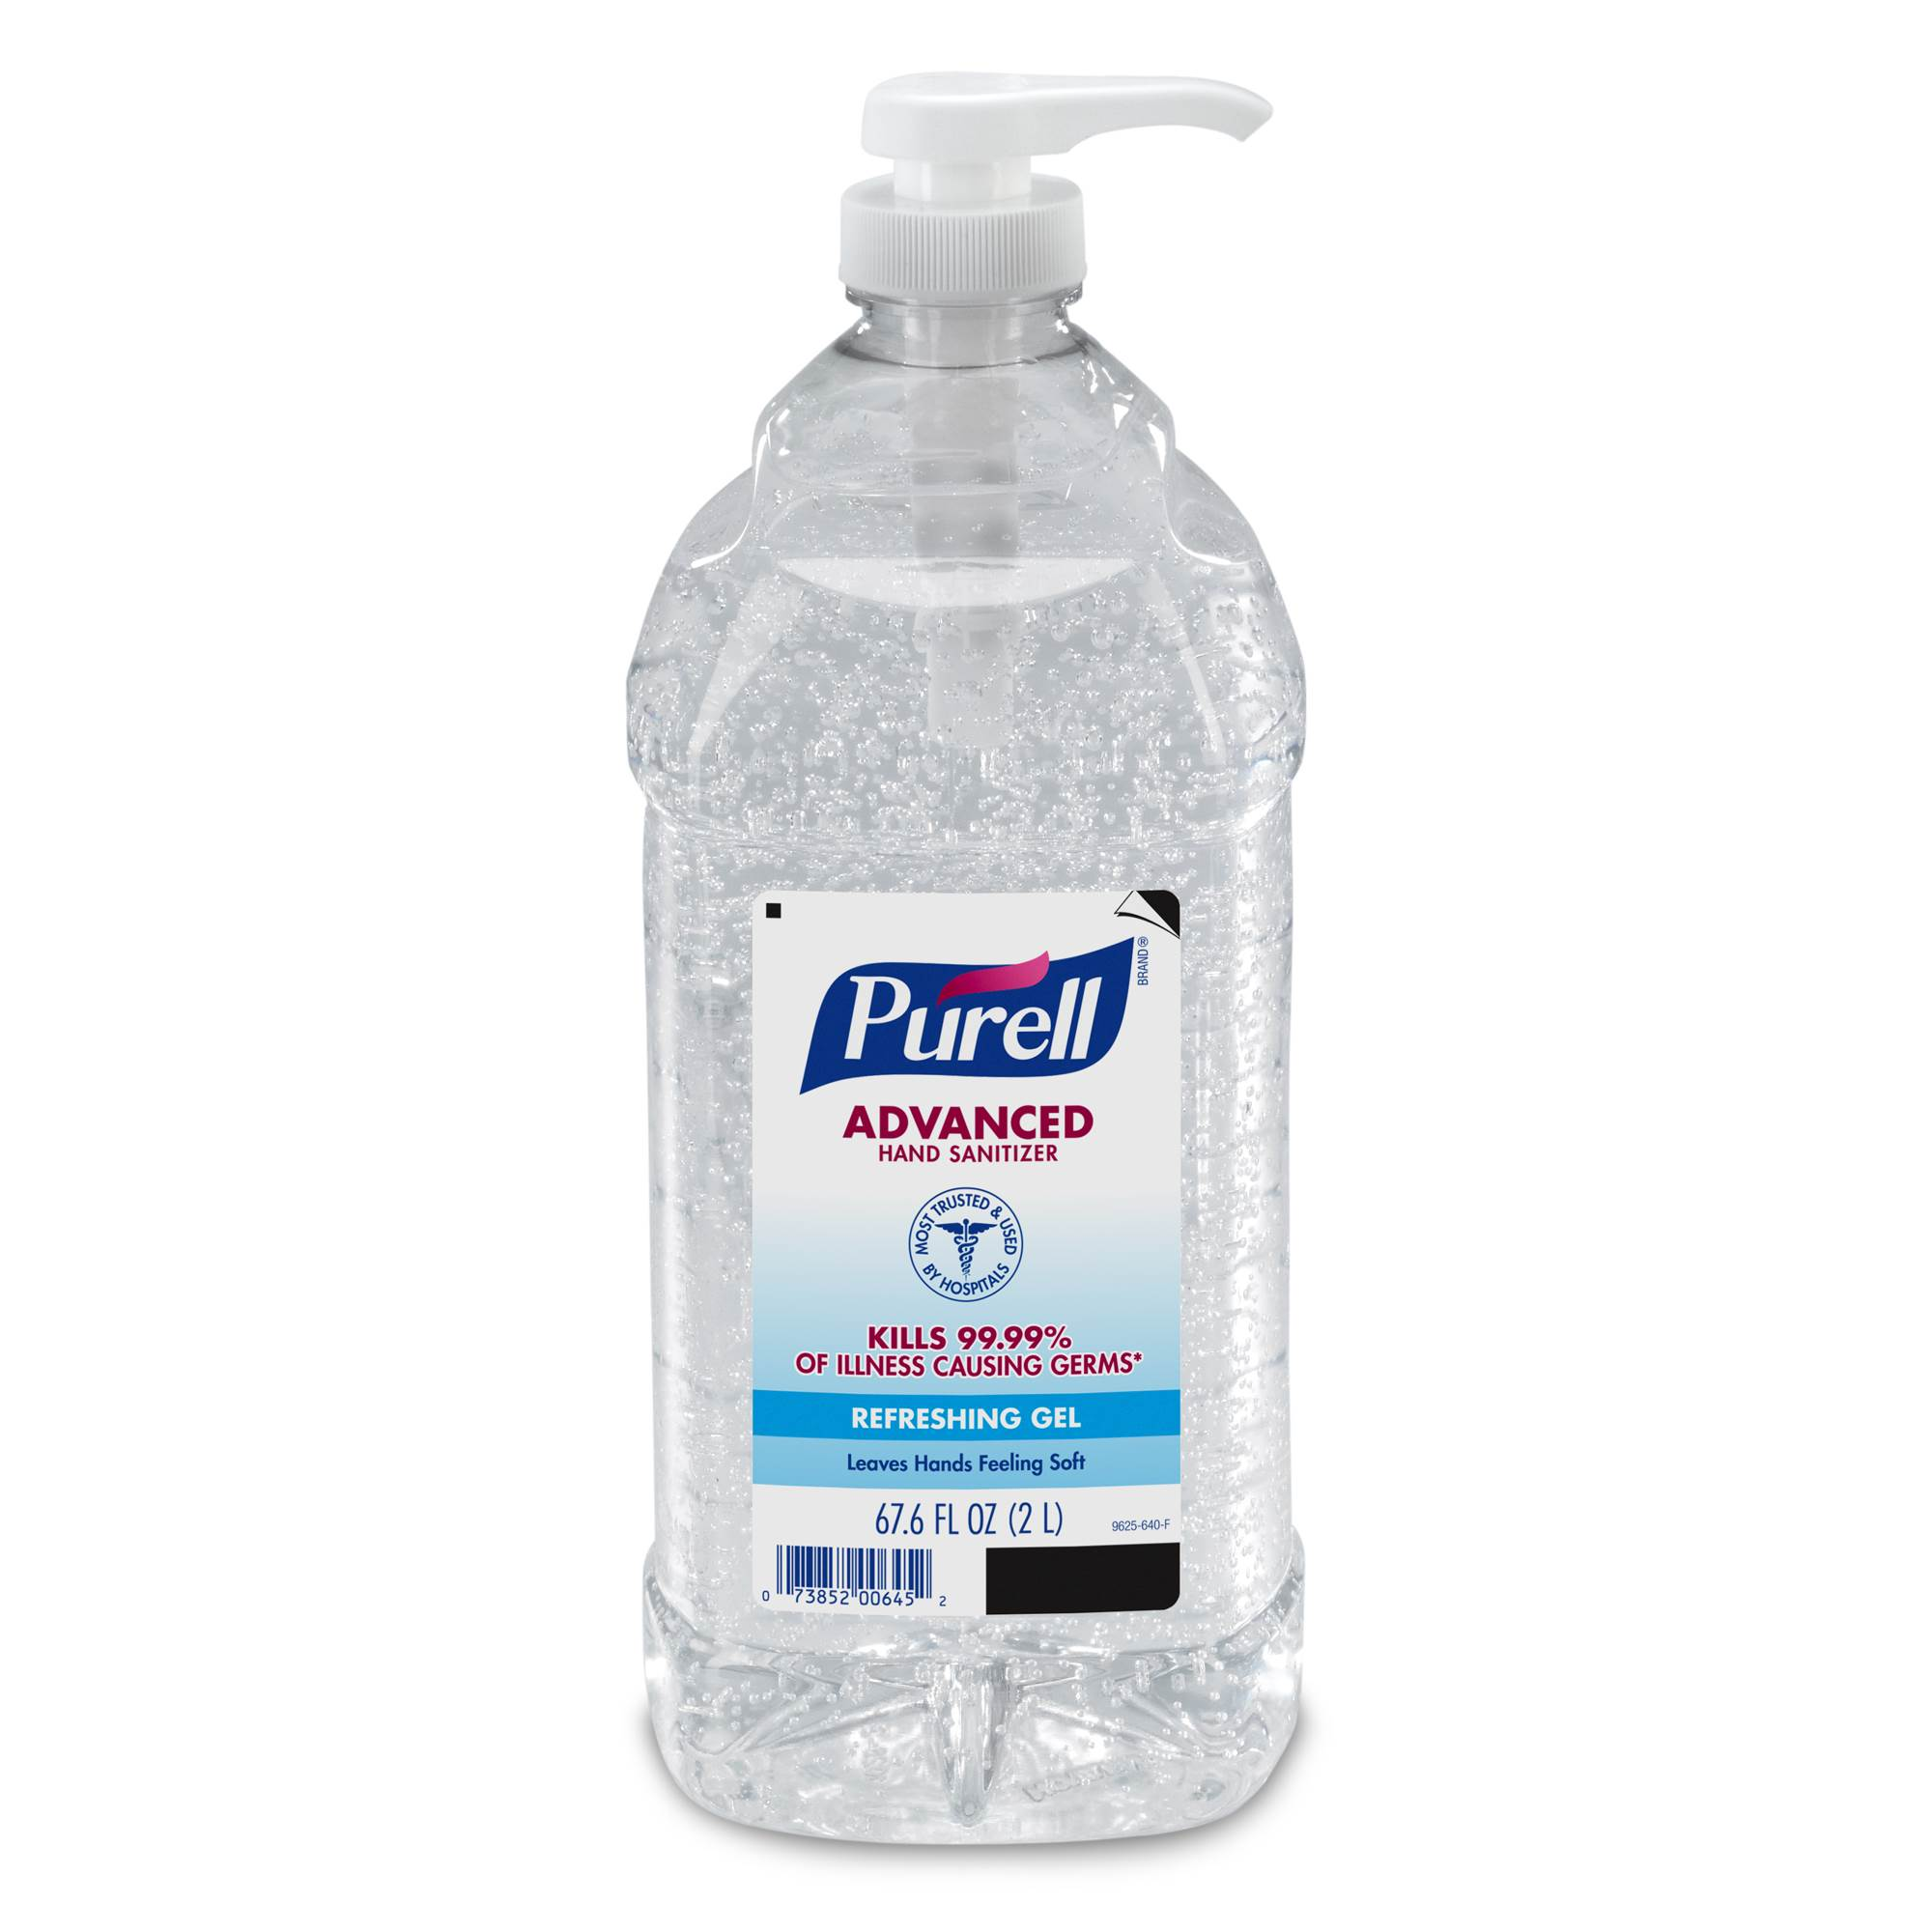 purell-advanced-avagard-d-hand-sanitizer